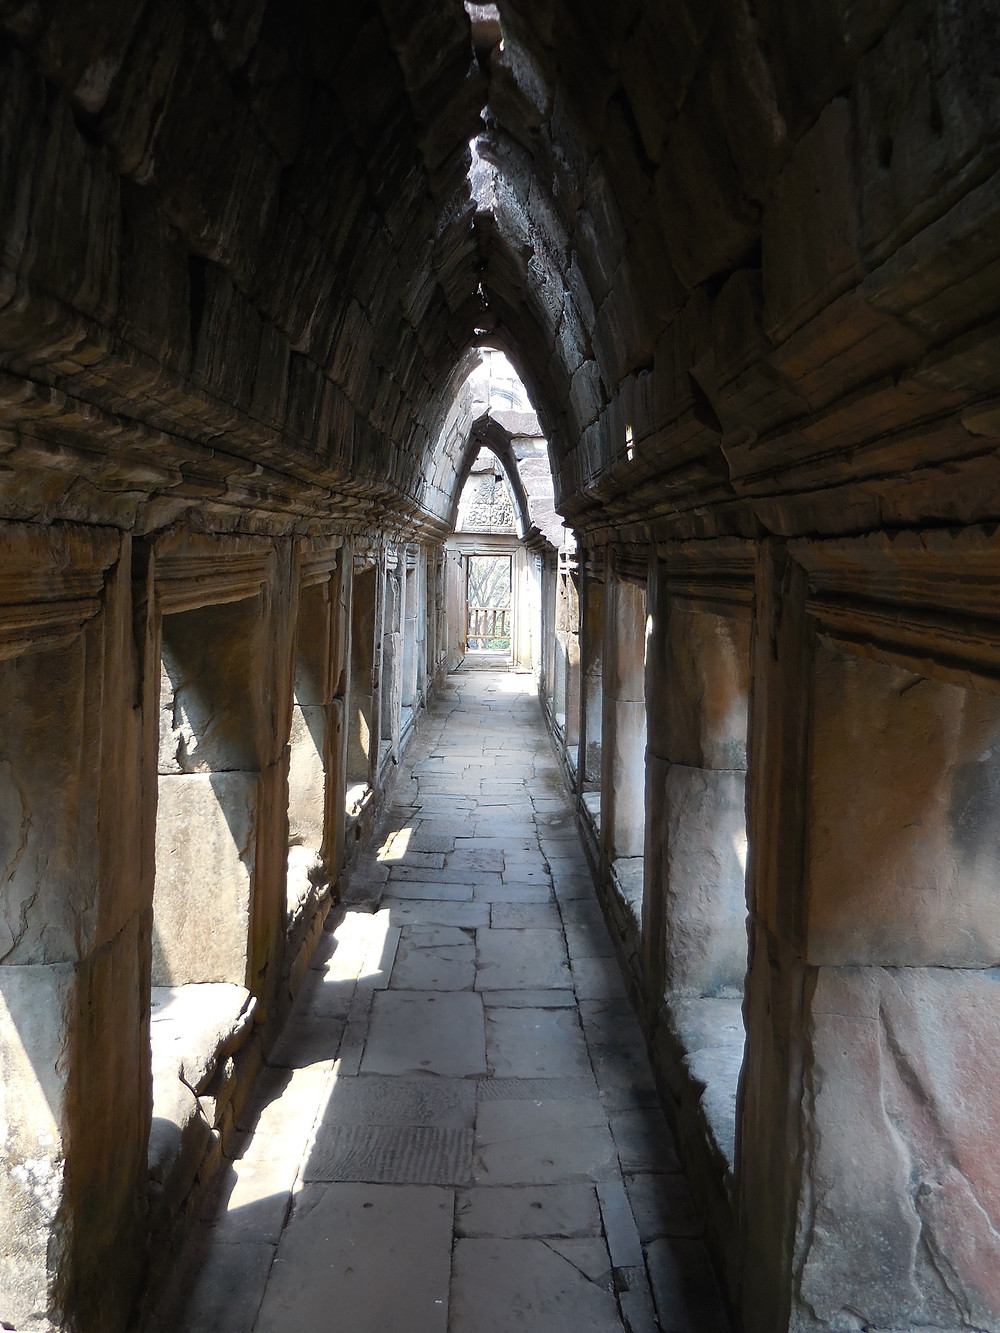 I just love all the corridors in the temples - especially when the sunlight filters through the openings